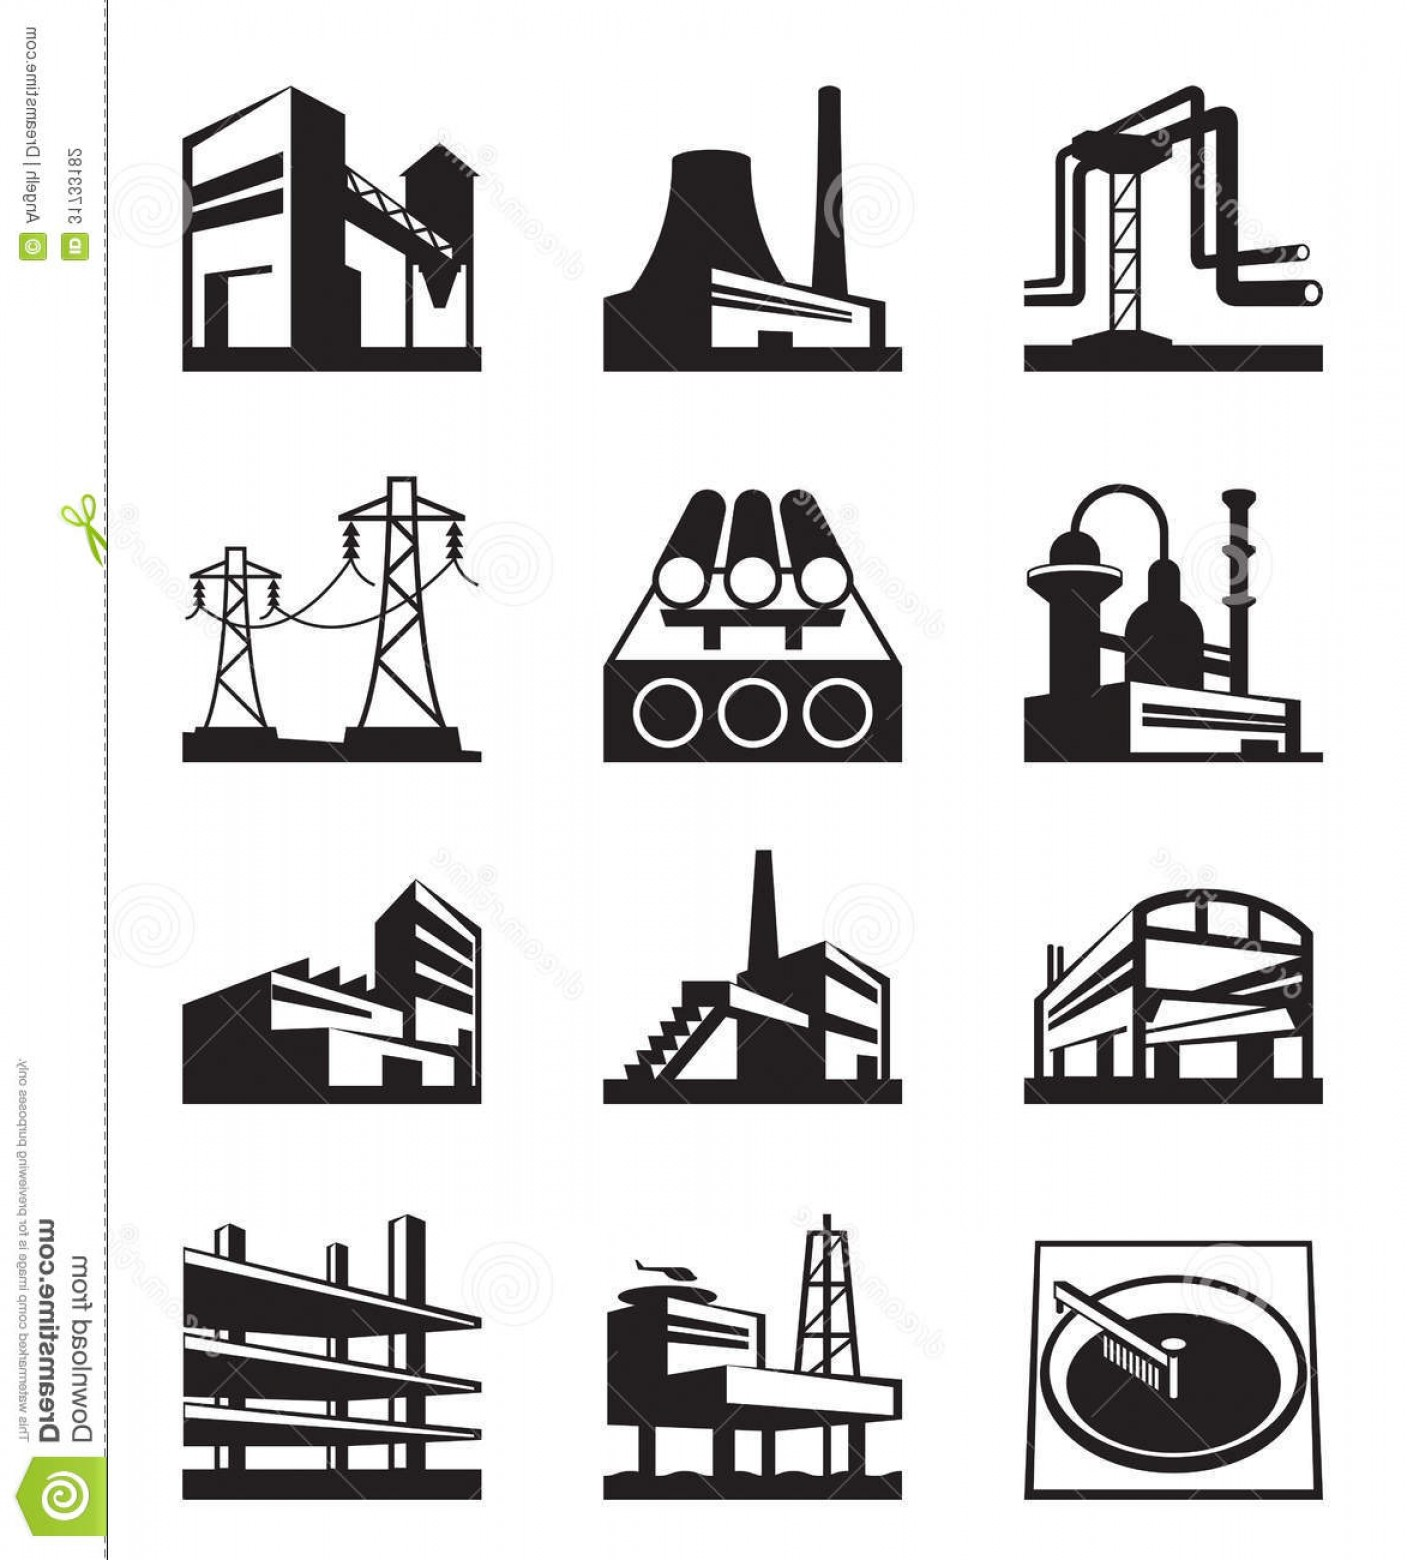 Industrial Vector Art: Stock Photography Different Industrial Construction Types Vector Illustration Image